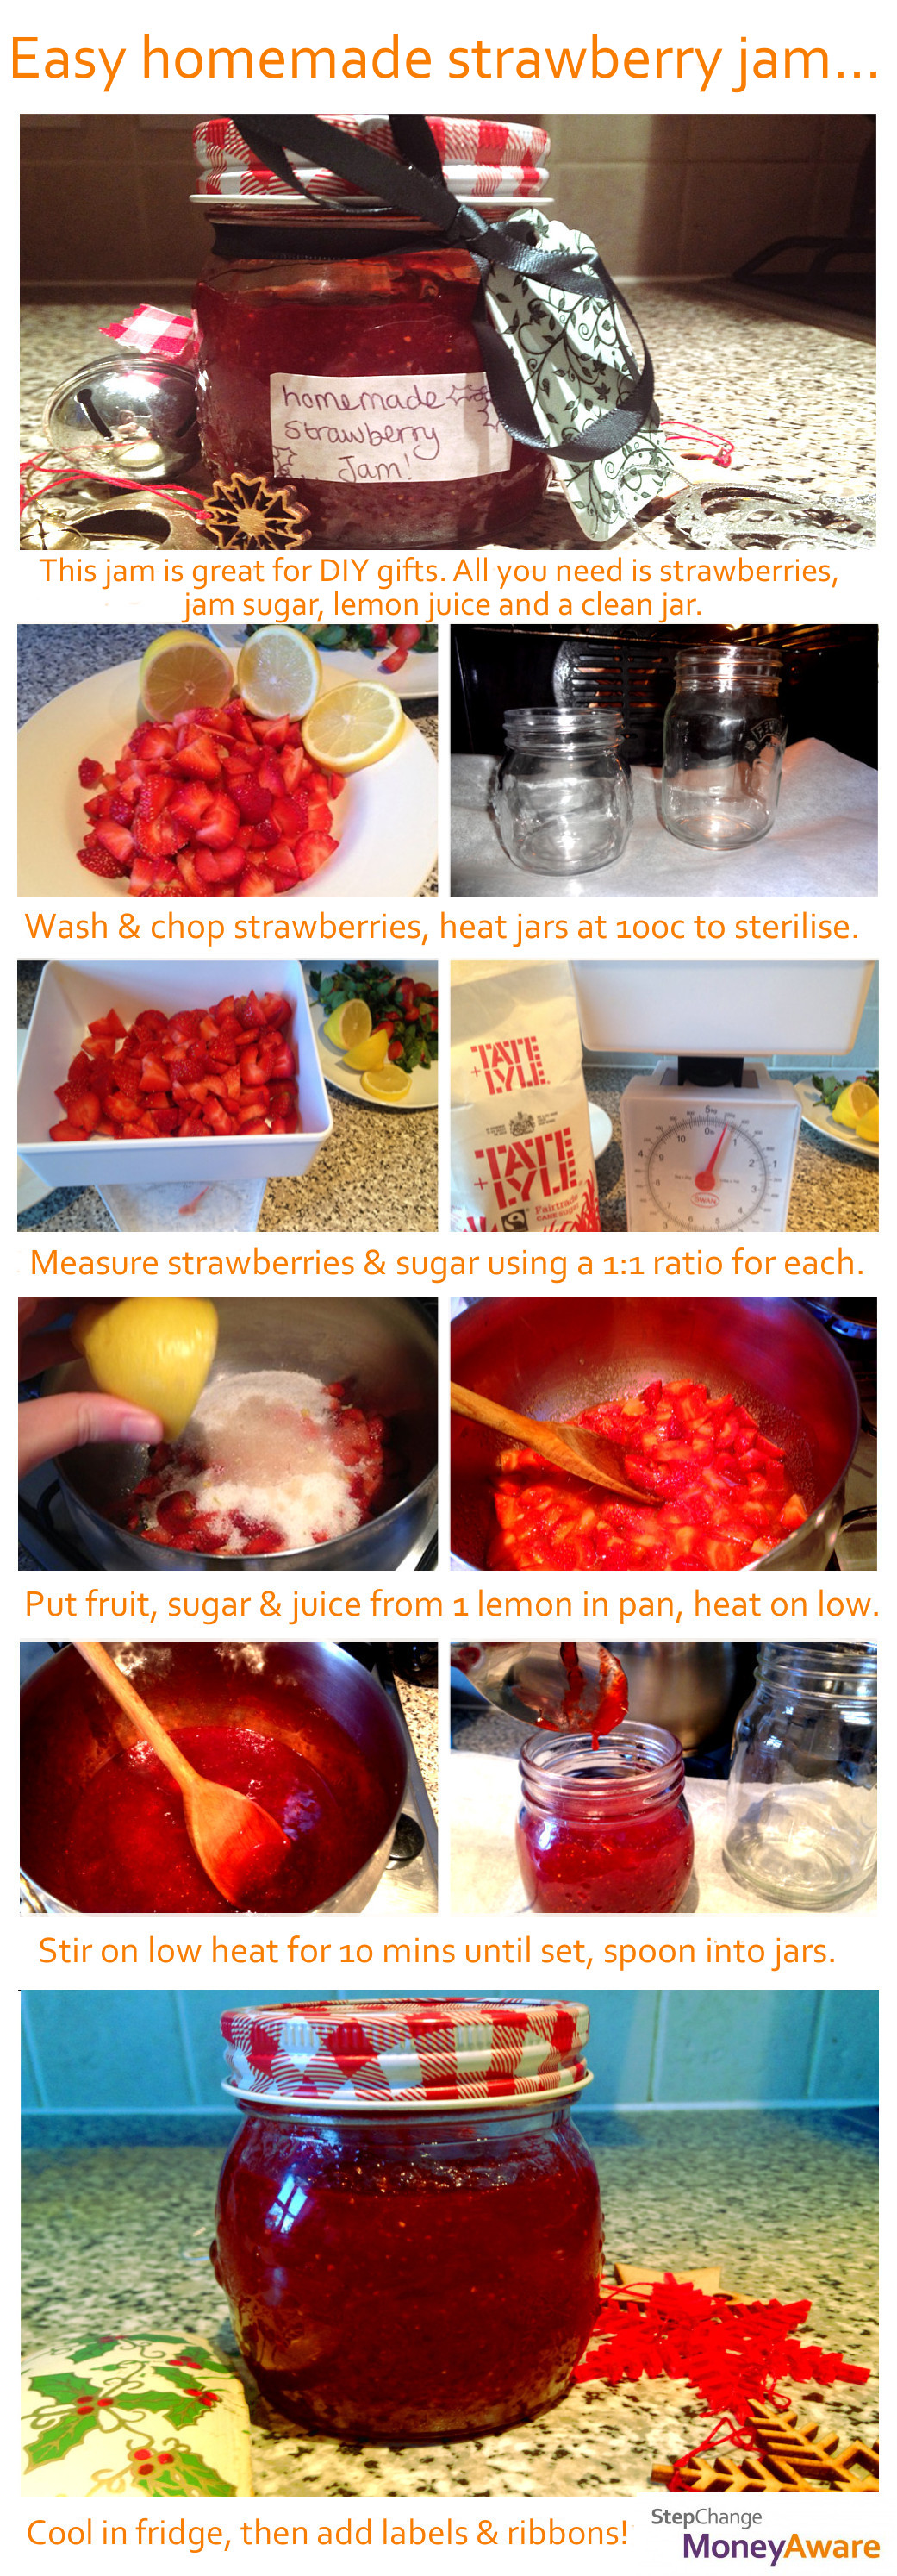 step by step visuals to make jam